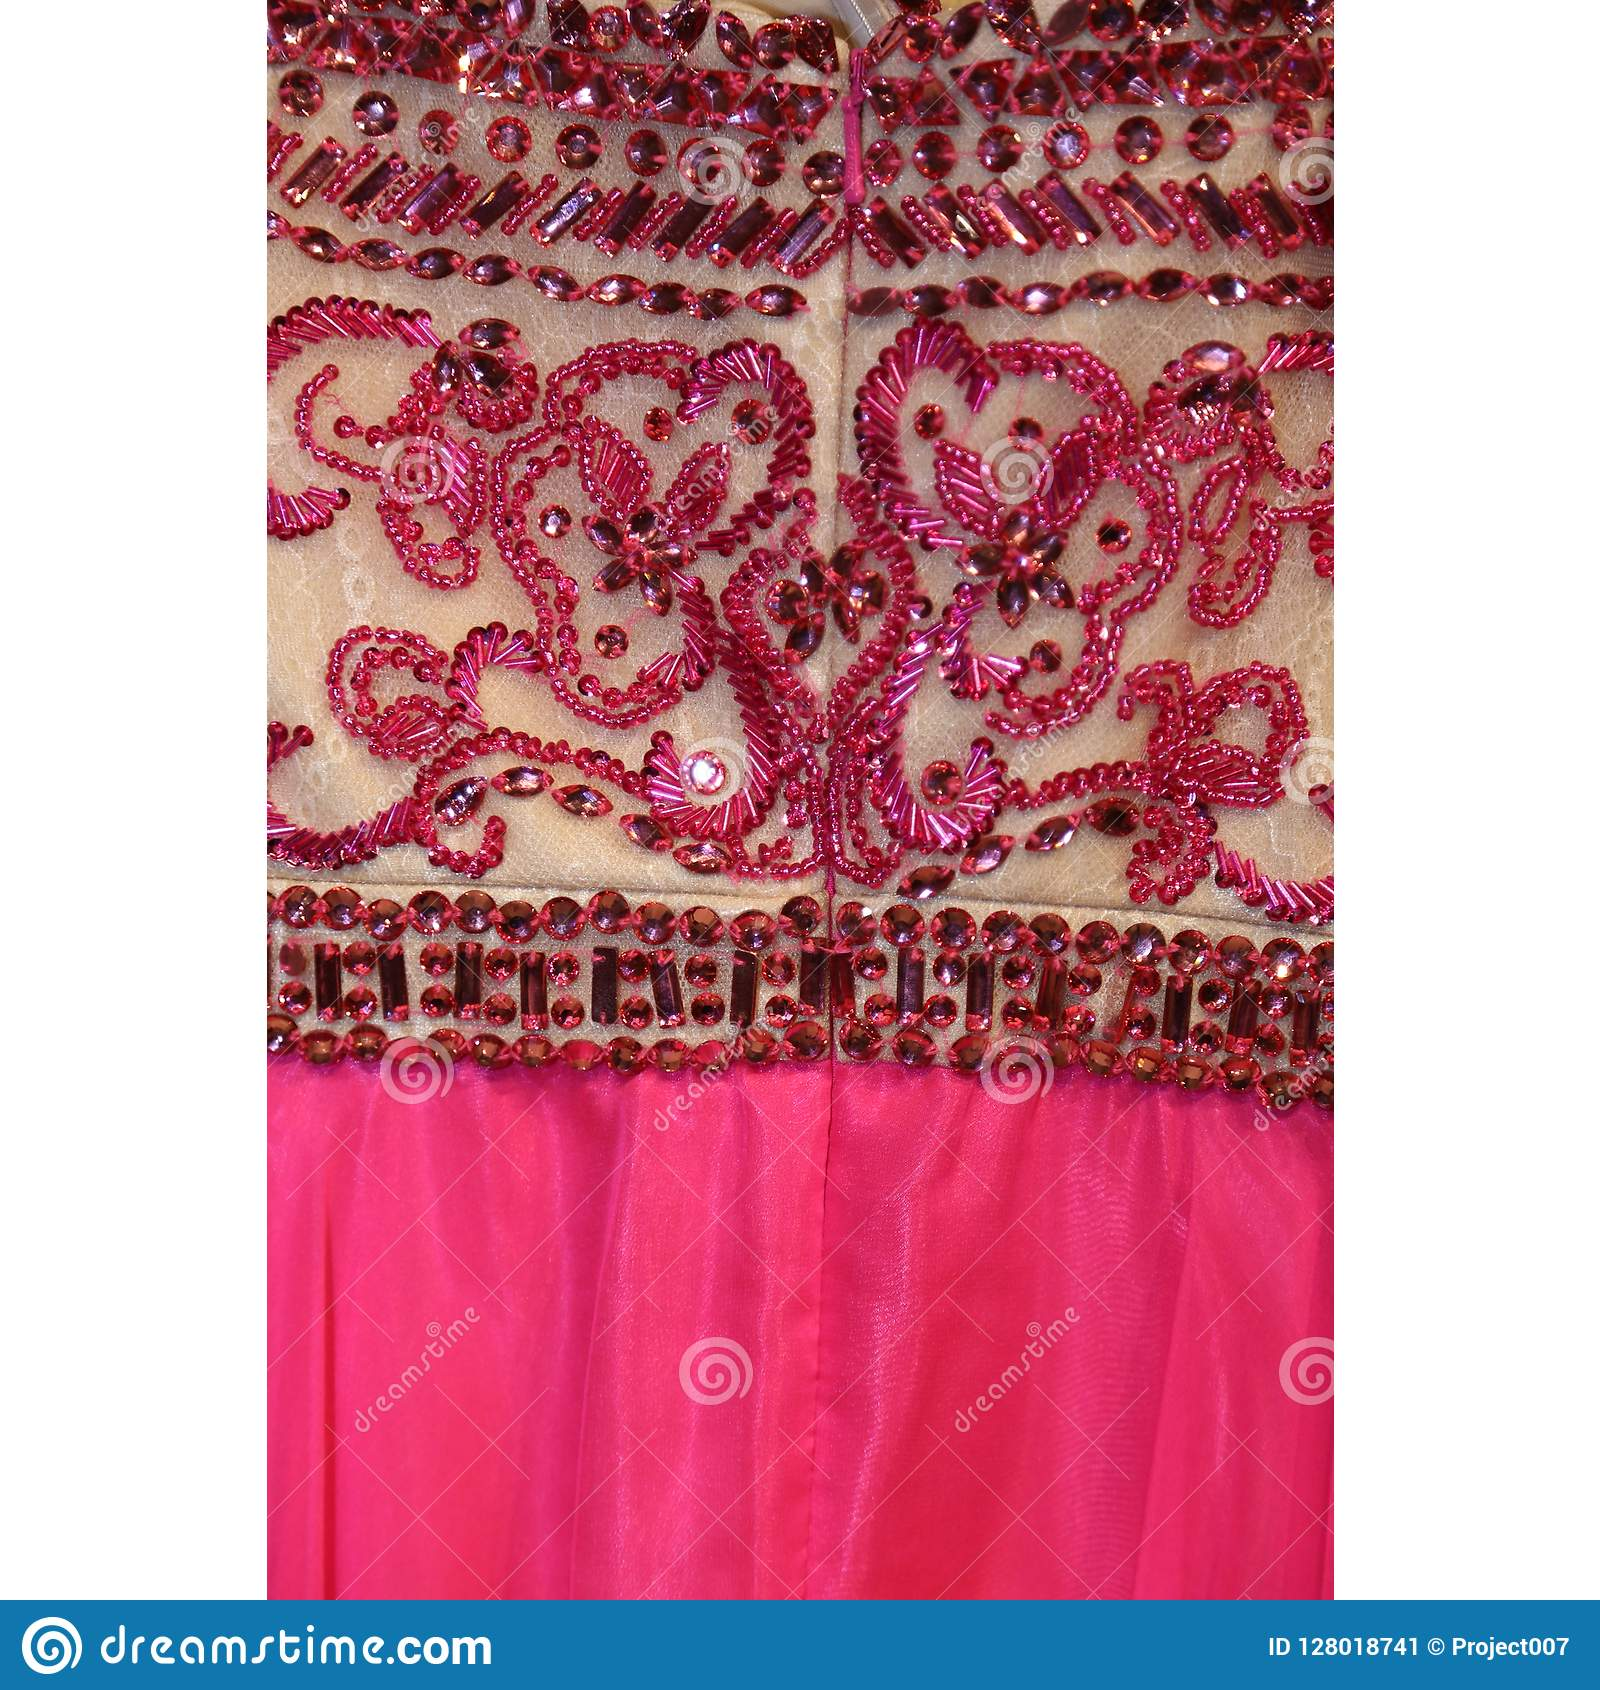 Fashion industry- manufacturing formal gowns